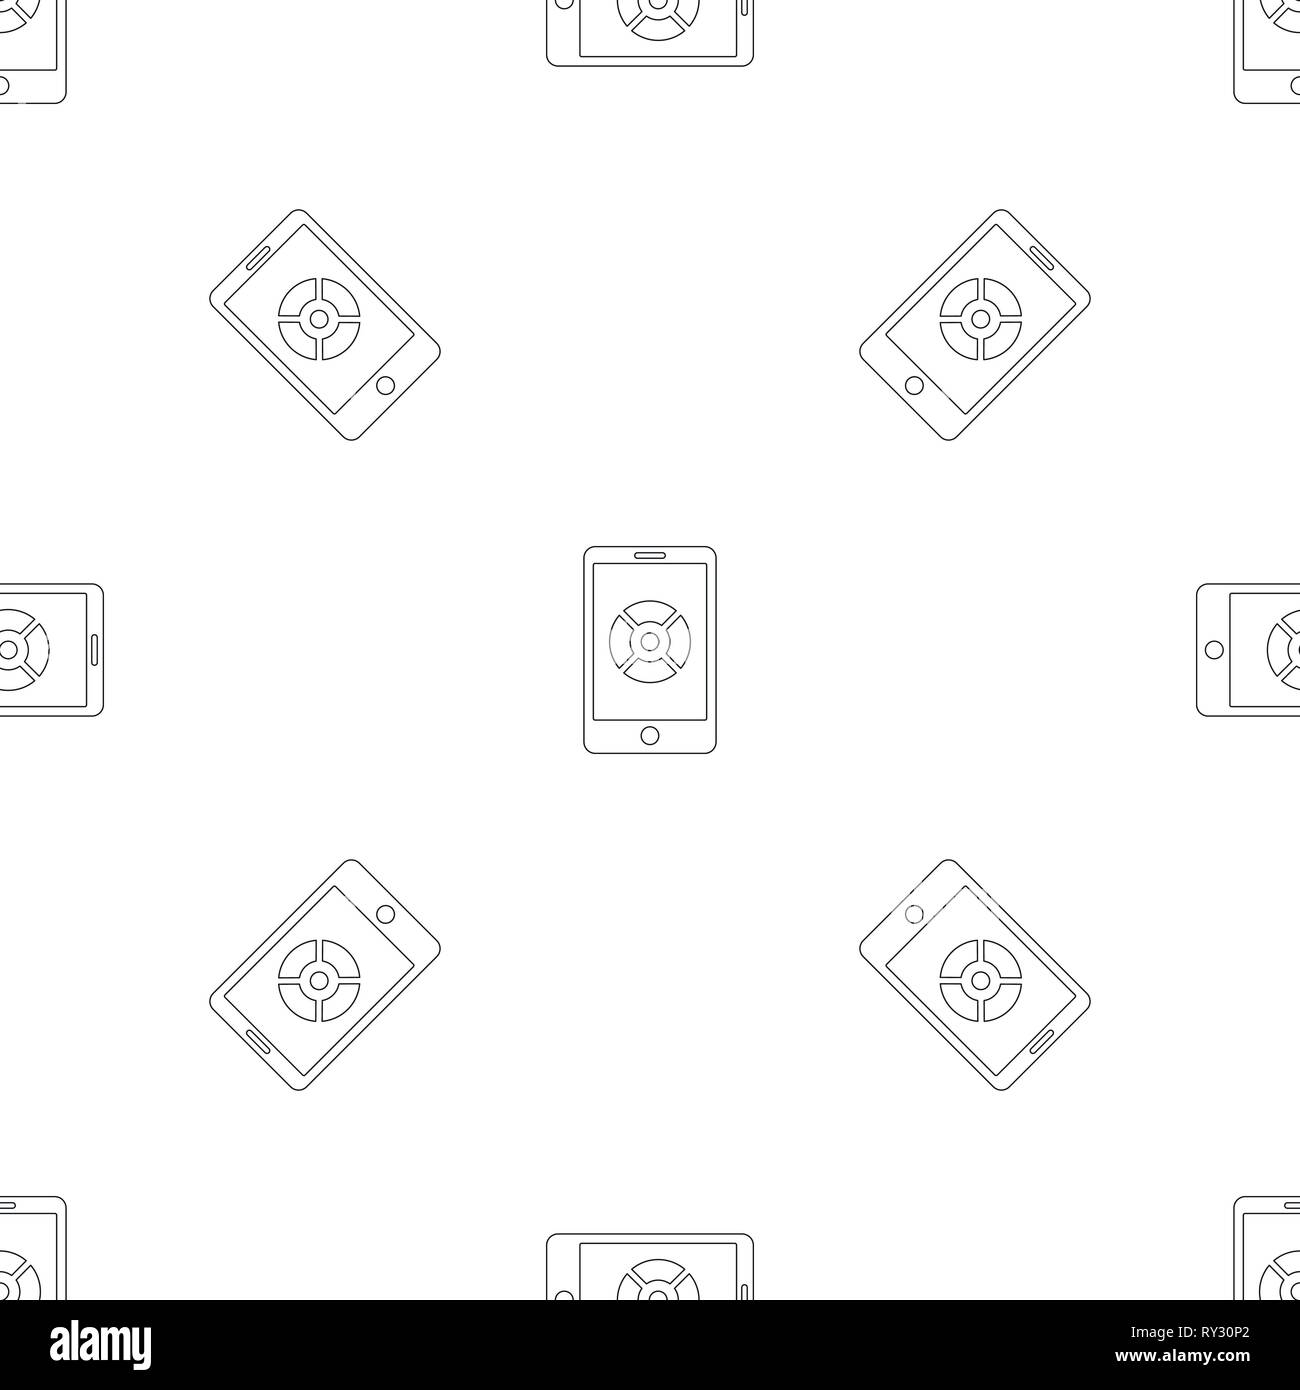 Smartphone drone control pattern seamless vector repeat geometric for any web design - Stock Image